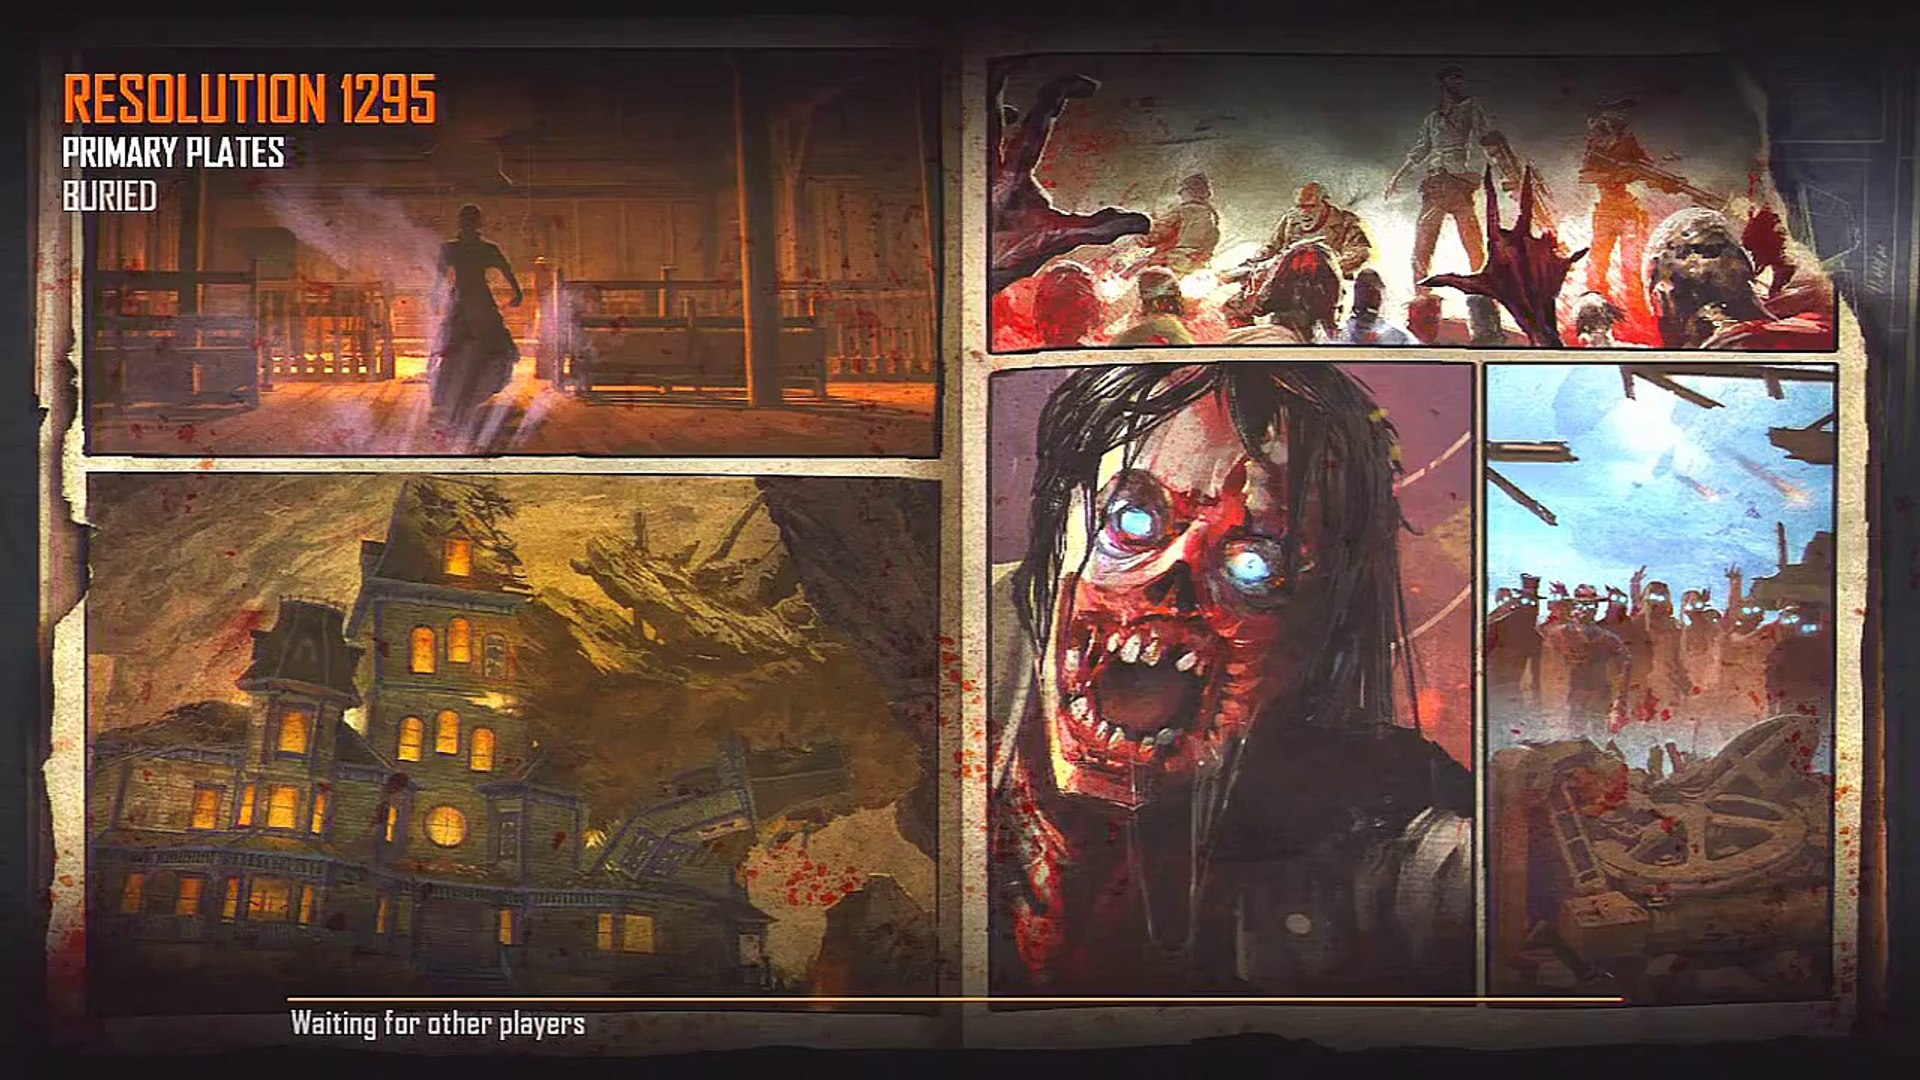 How To Get The Paralyzer AND Raygun Mark 2 Every time! - Black Ops Call Of Duty Black Ops Buried Map Pack on black ops zombies kino der toten map, call duty black ops 2 zombies buried, bo2 zombies origins map, call of duty advanced warfare maps, call duty black ops zombies all maps, call of duty bo2, call of duty maps list, black ops 2 zombies buried map, black ops 2 origins map, call of duty ghosts maps layout, black ops 2 zombies die rise map, bo2 zombies buried map, cod buried map, for black ops 2 tranzit map, black ops 2 mob of the dead map, call of duty black ops kino der toten map, call of duty horse, call of duty zombies buried, black ops zombies transit map, call of duty black ops zombies moon map,